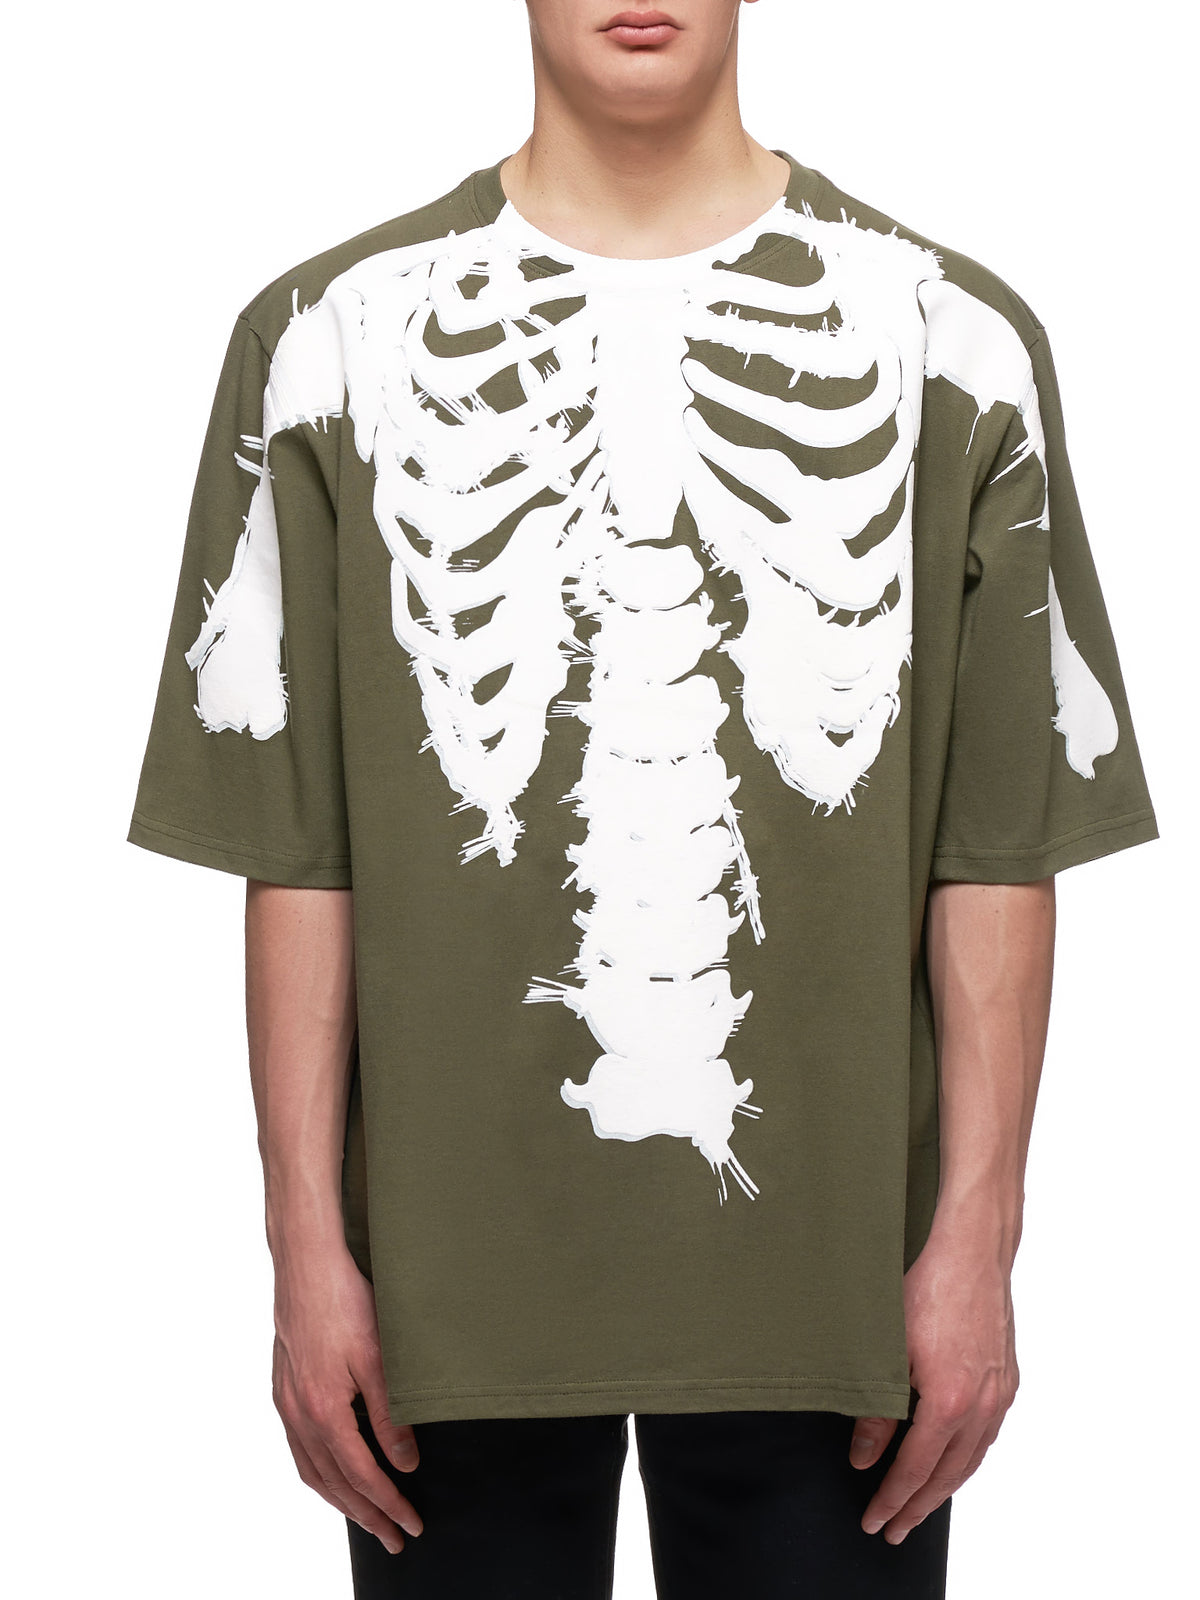 99% IS Skeleton Tee Shirt - Hlorenzo Front